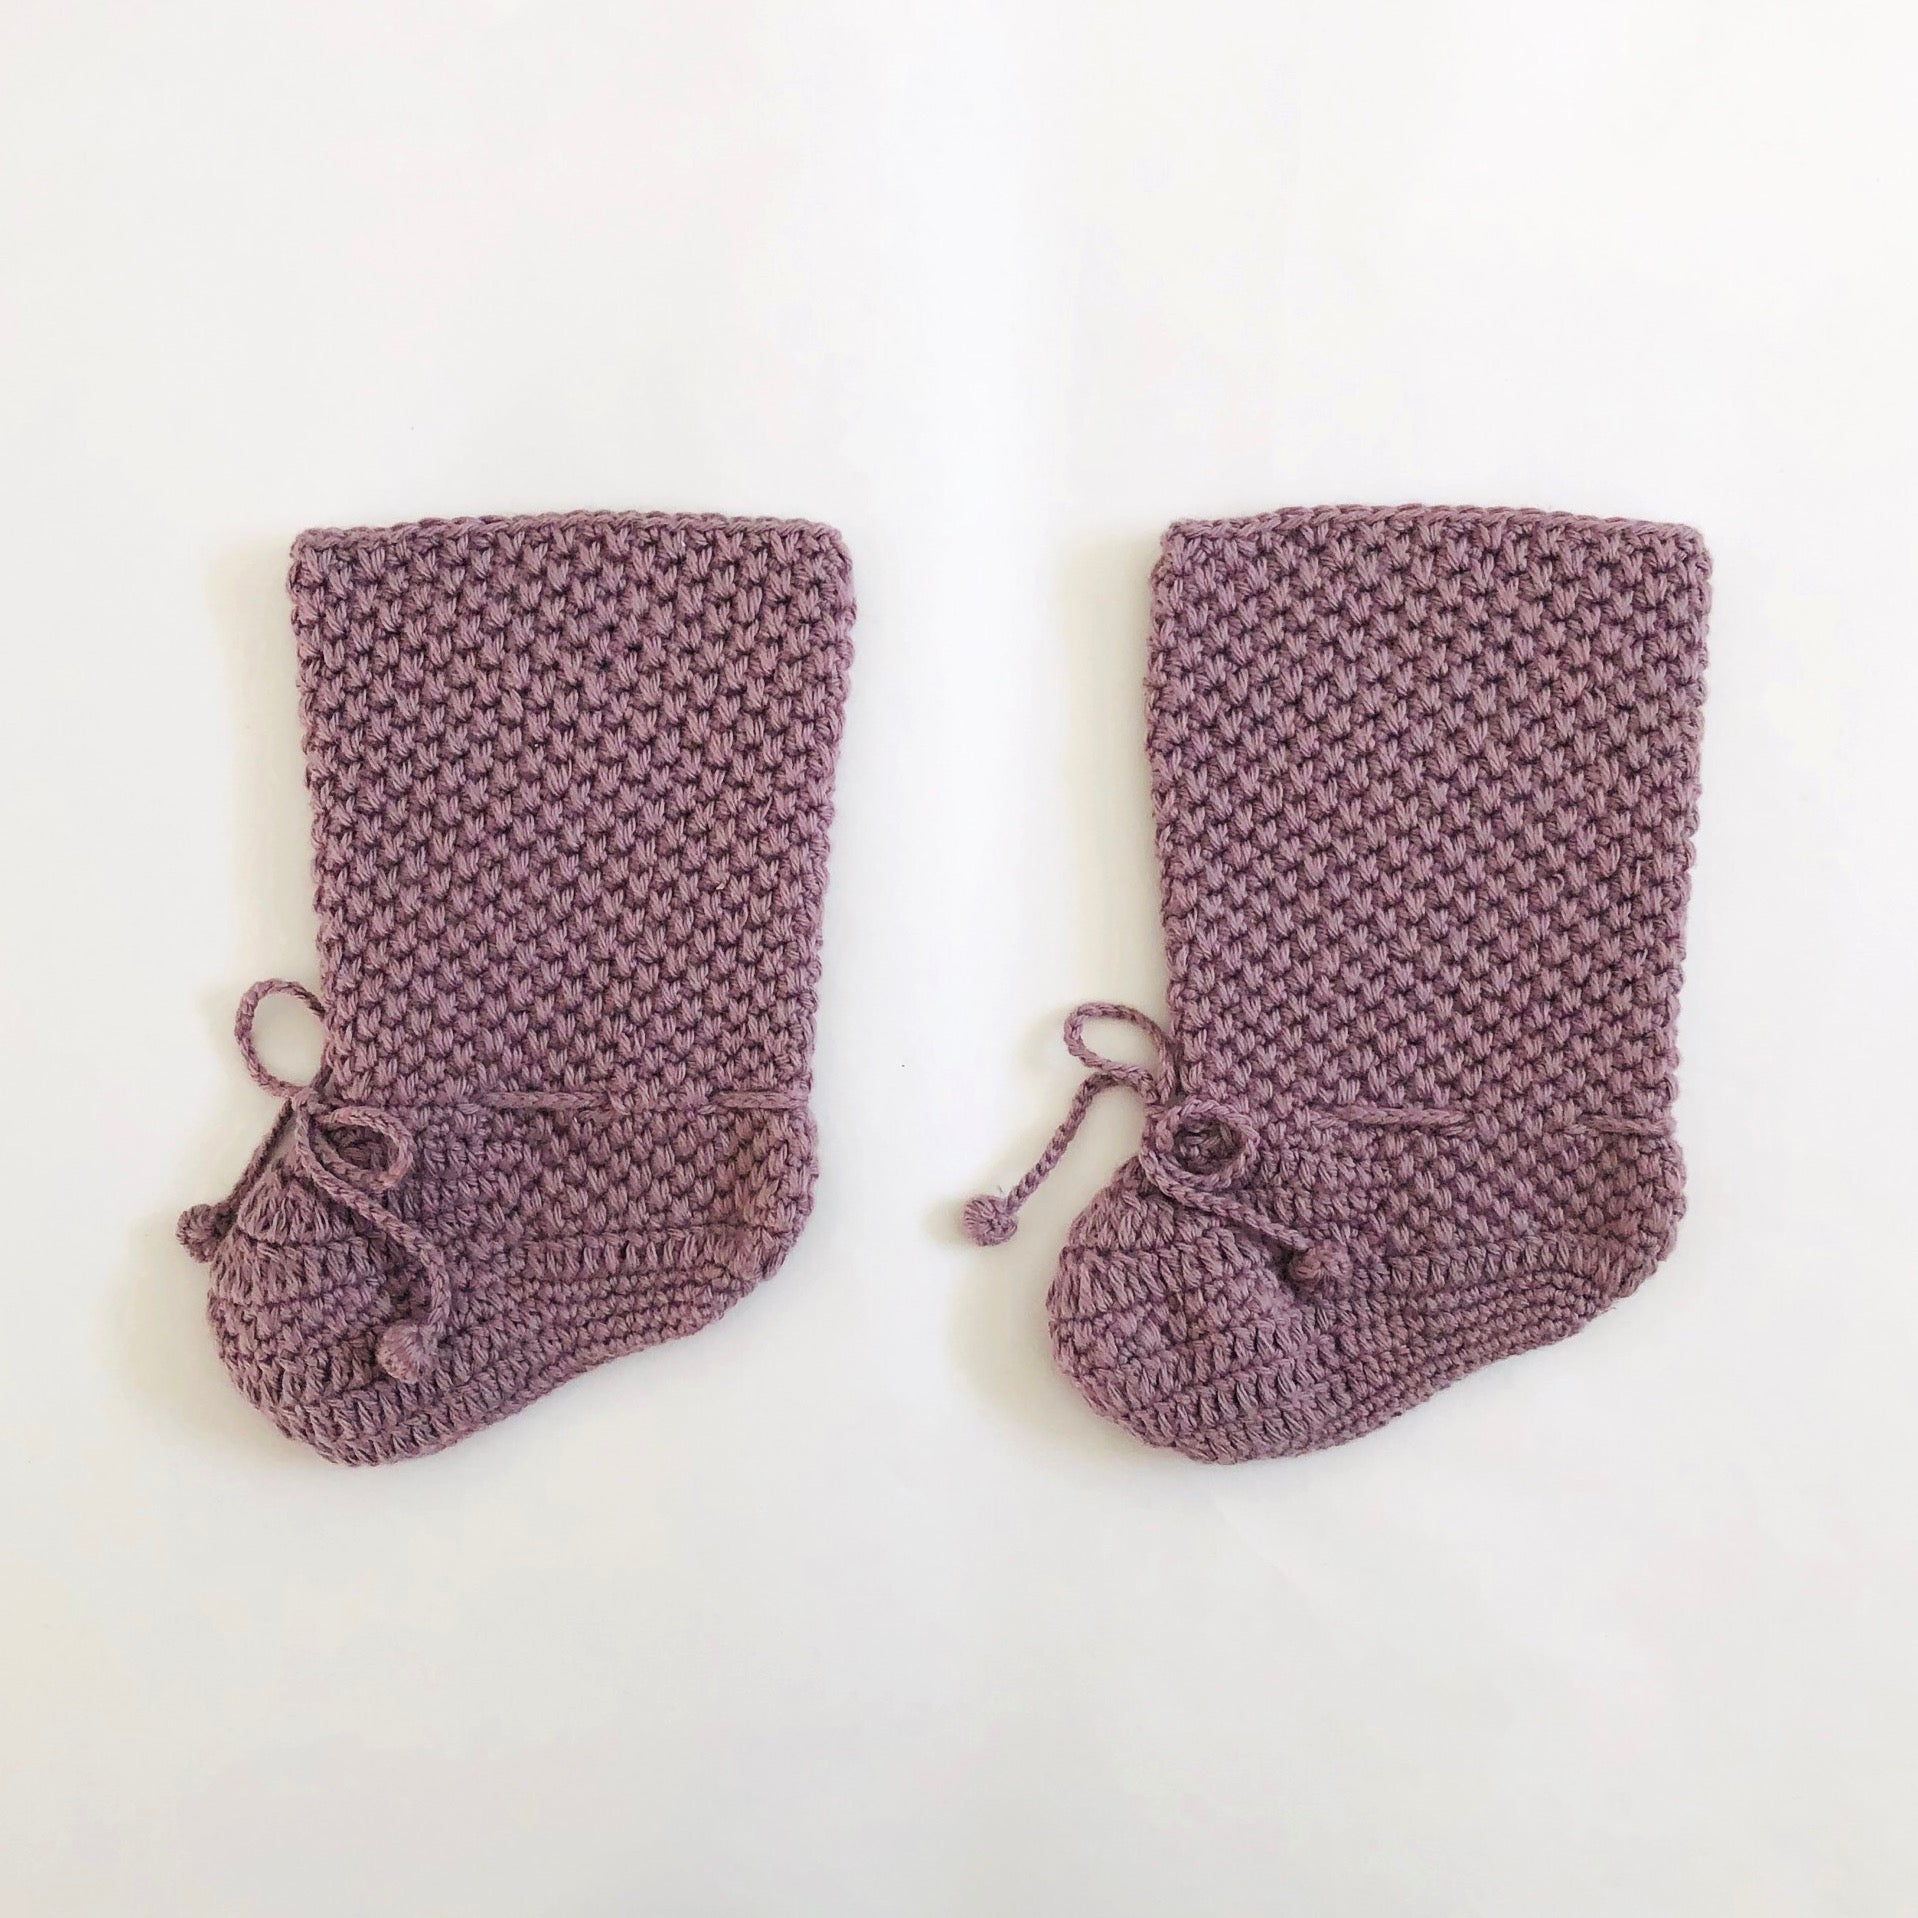 Miou Kids organic cotton crochet long booties - plum